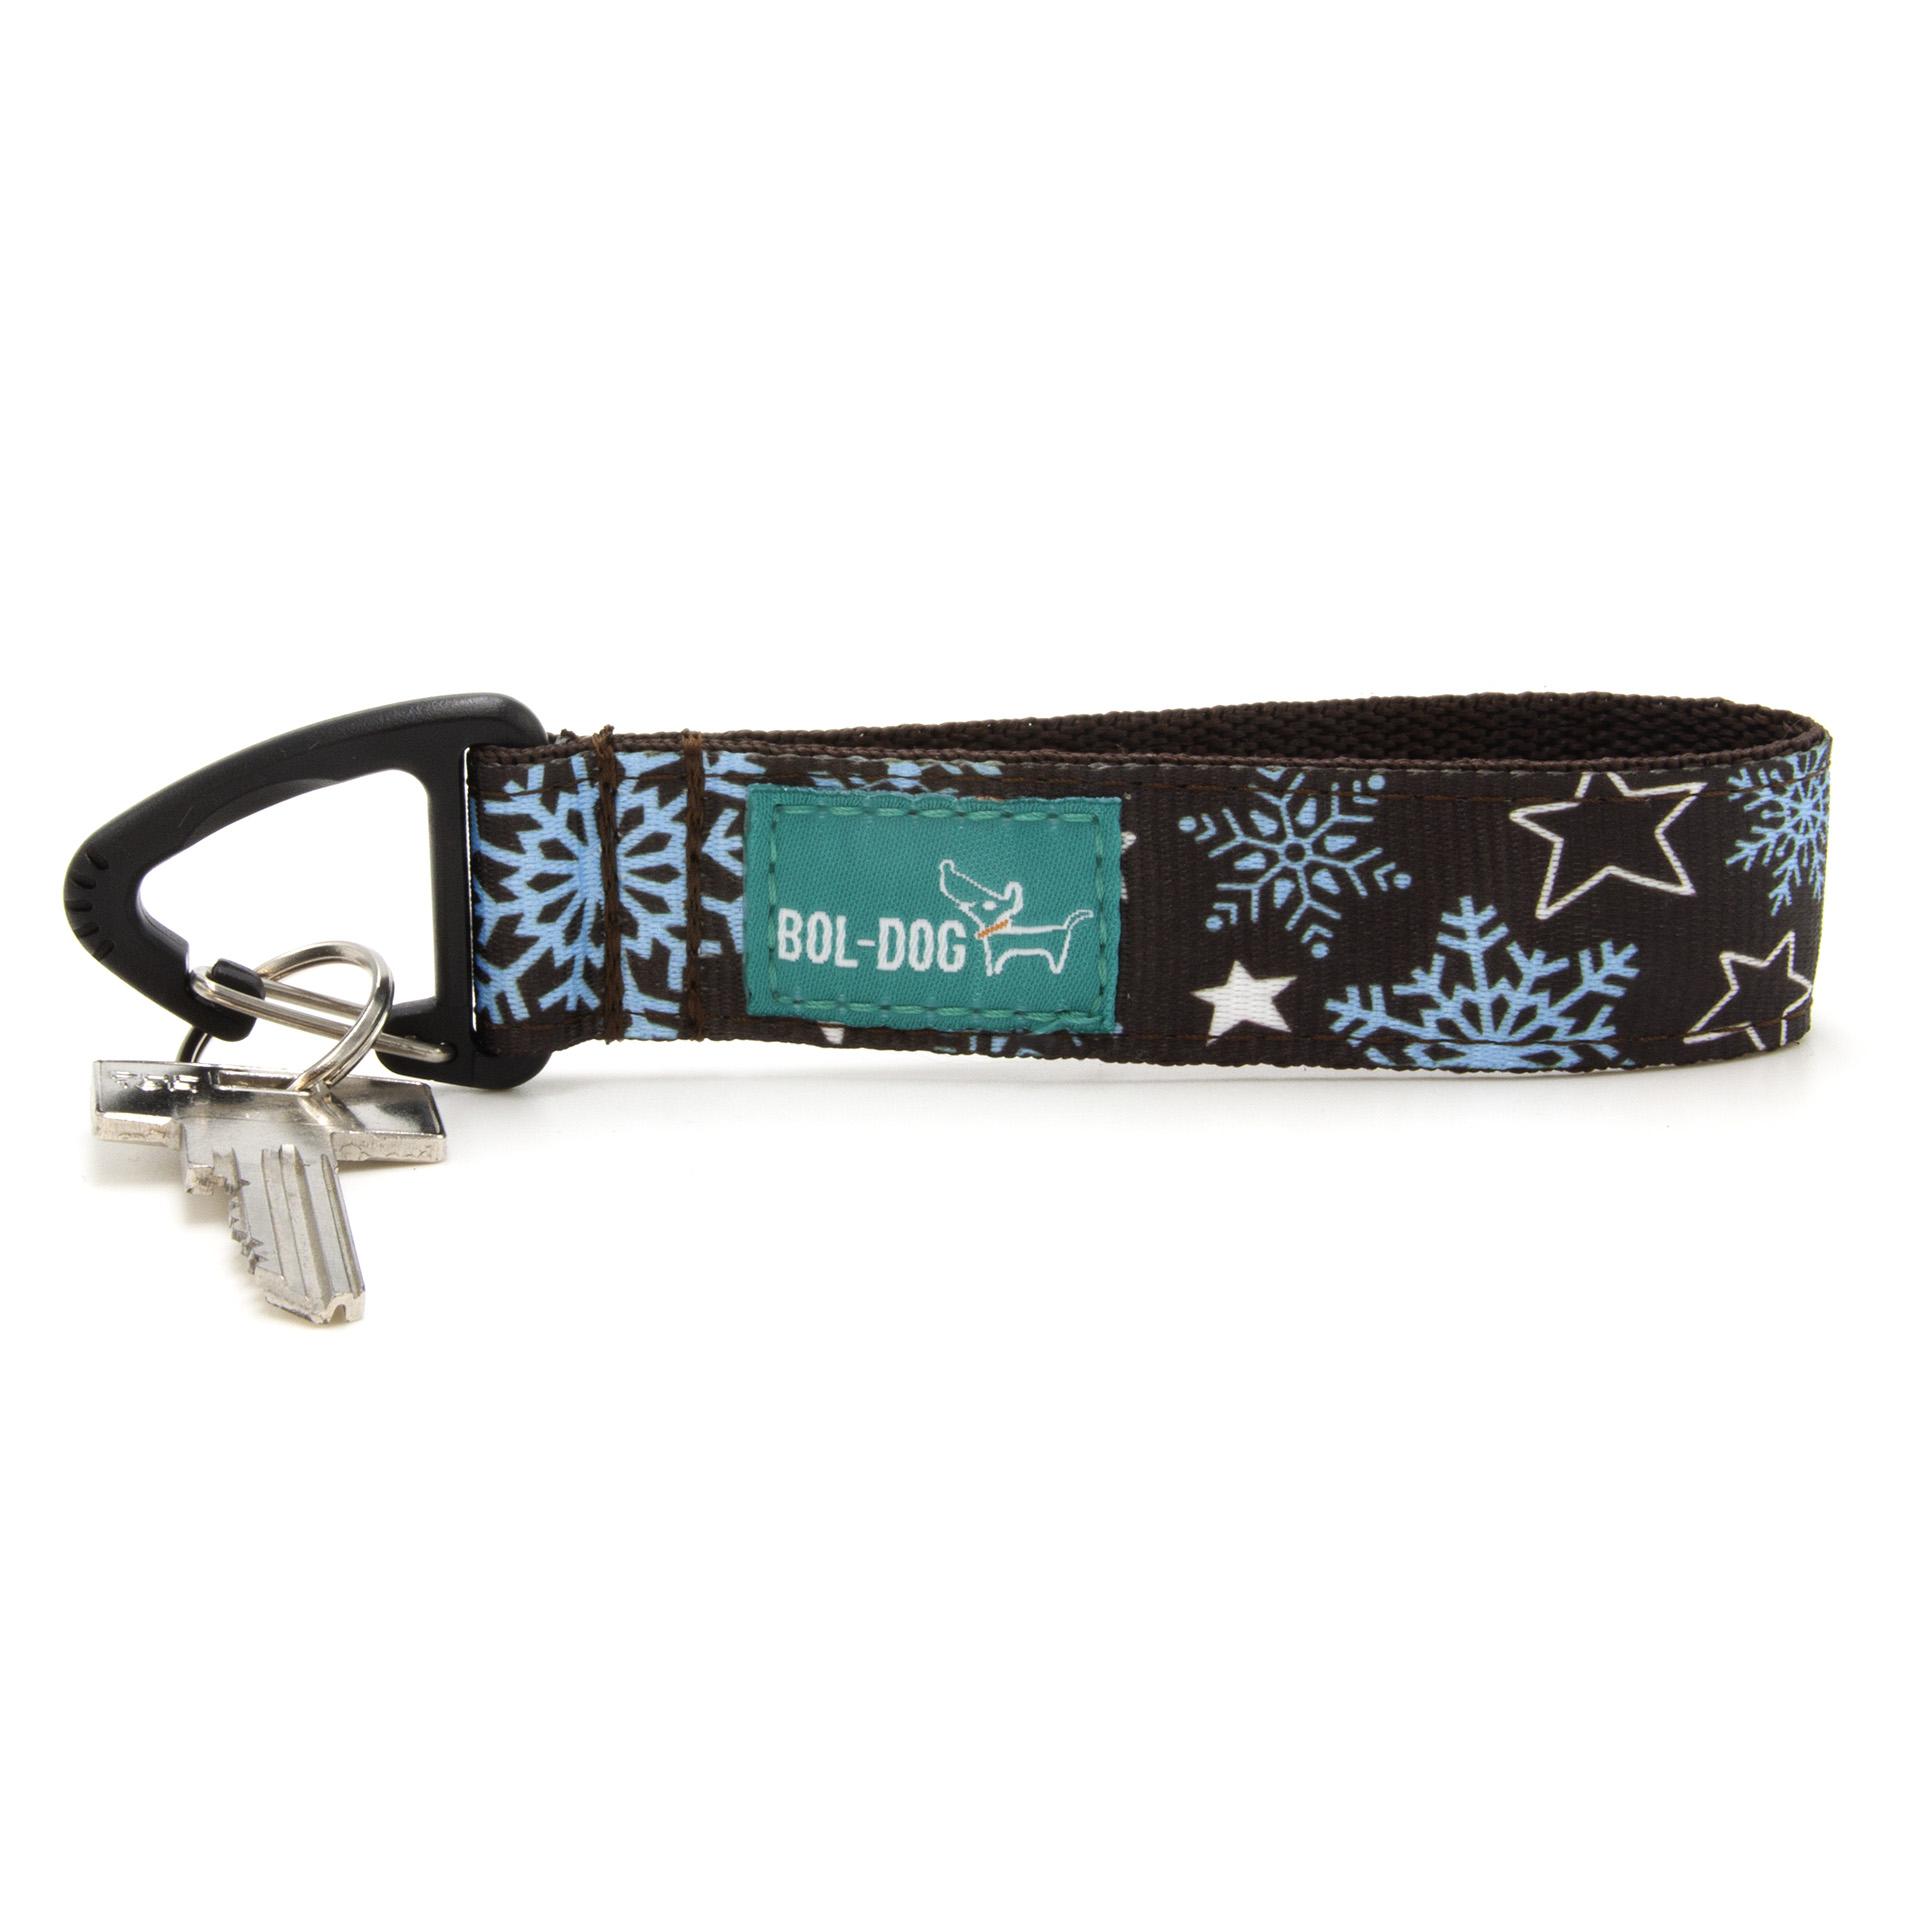 Snowfall key holder